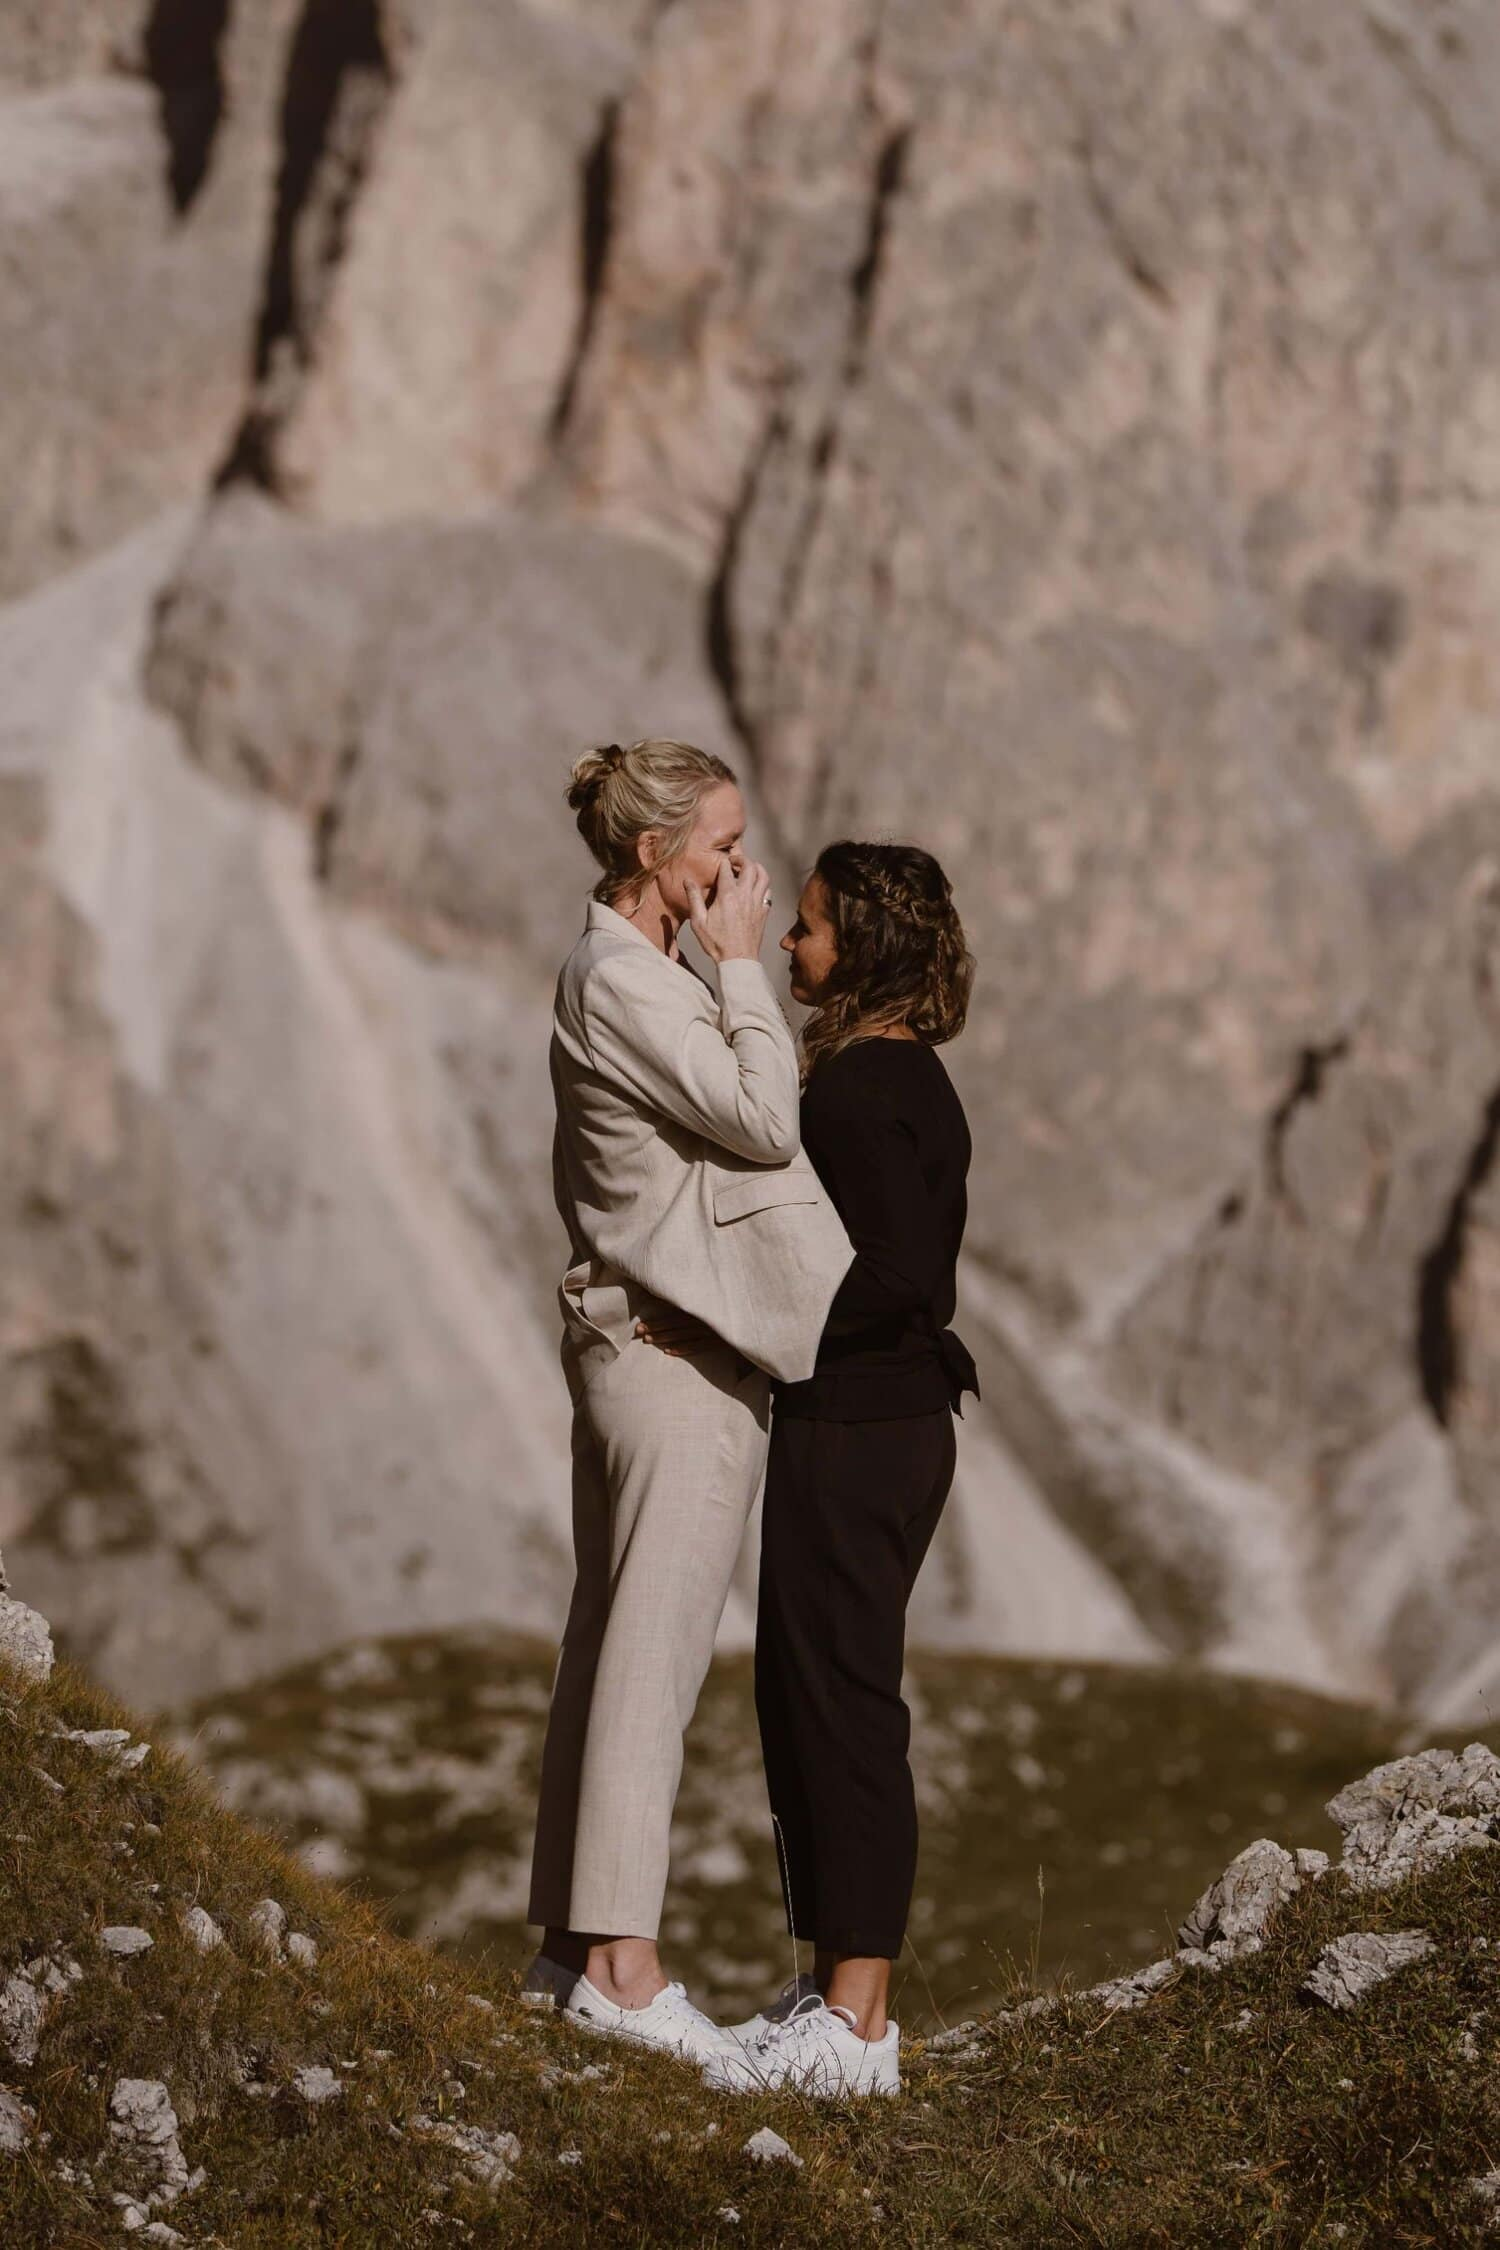 Two brides embracing in the Italian Dolomites.